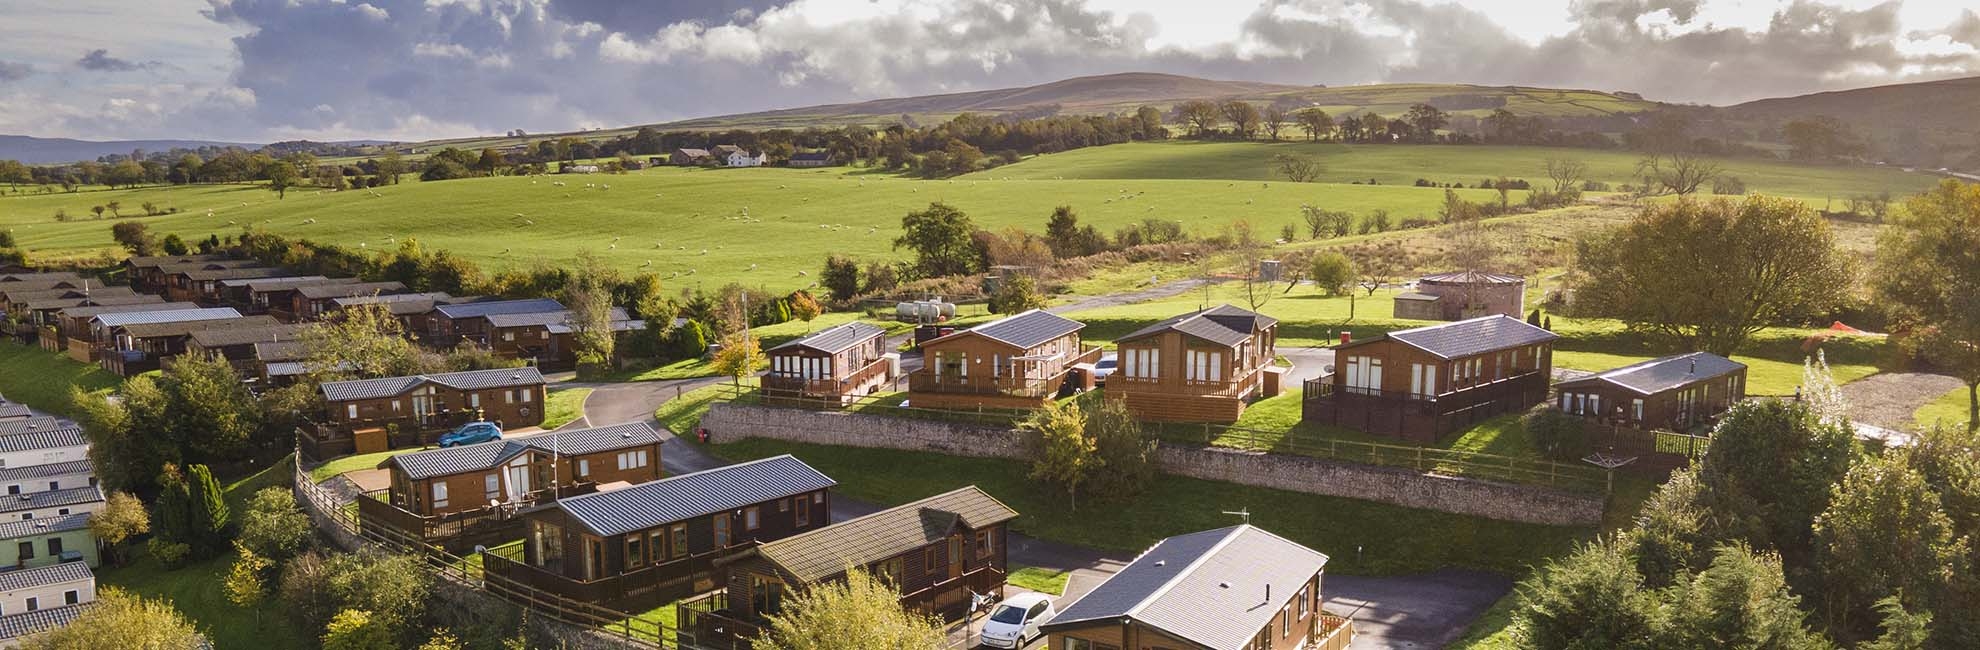 A view of wooden lodges at Todber Valley Holiday Park